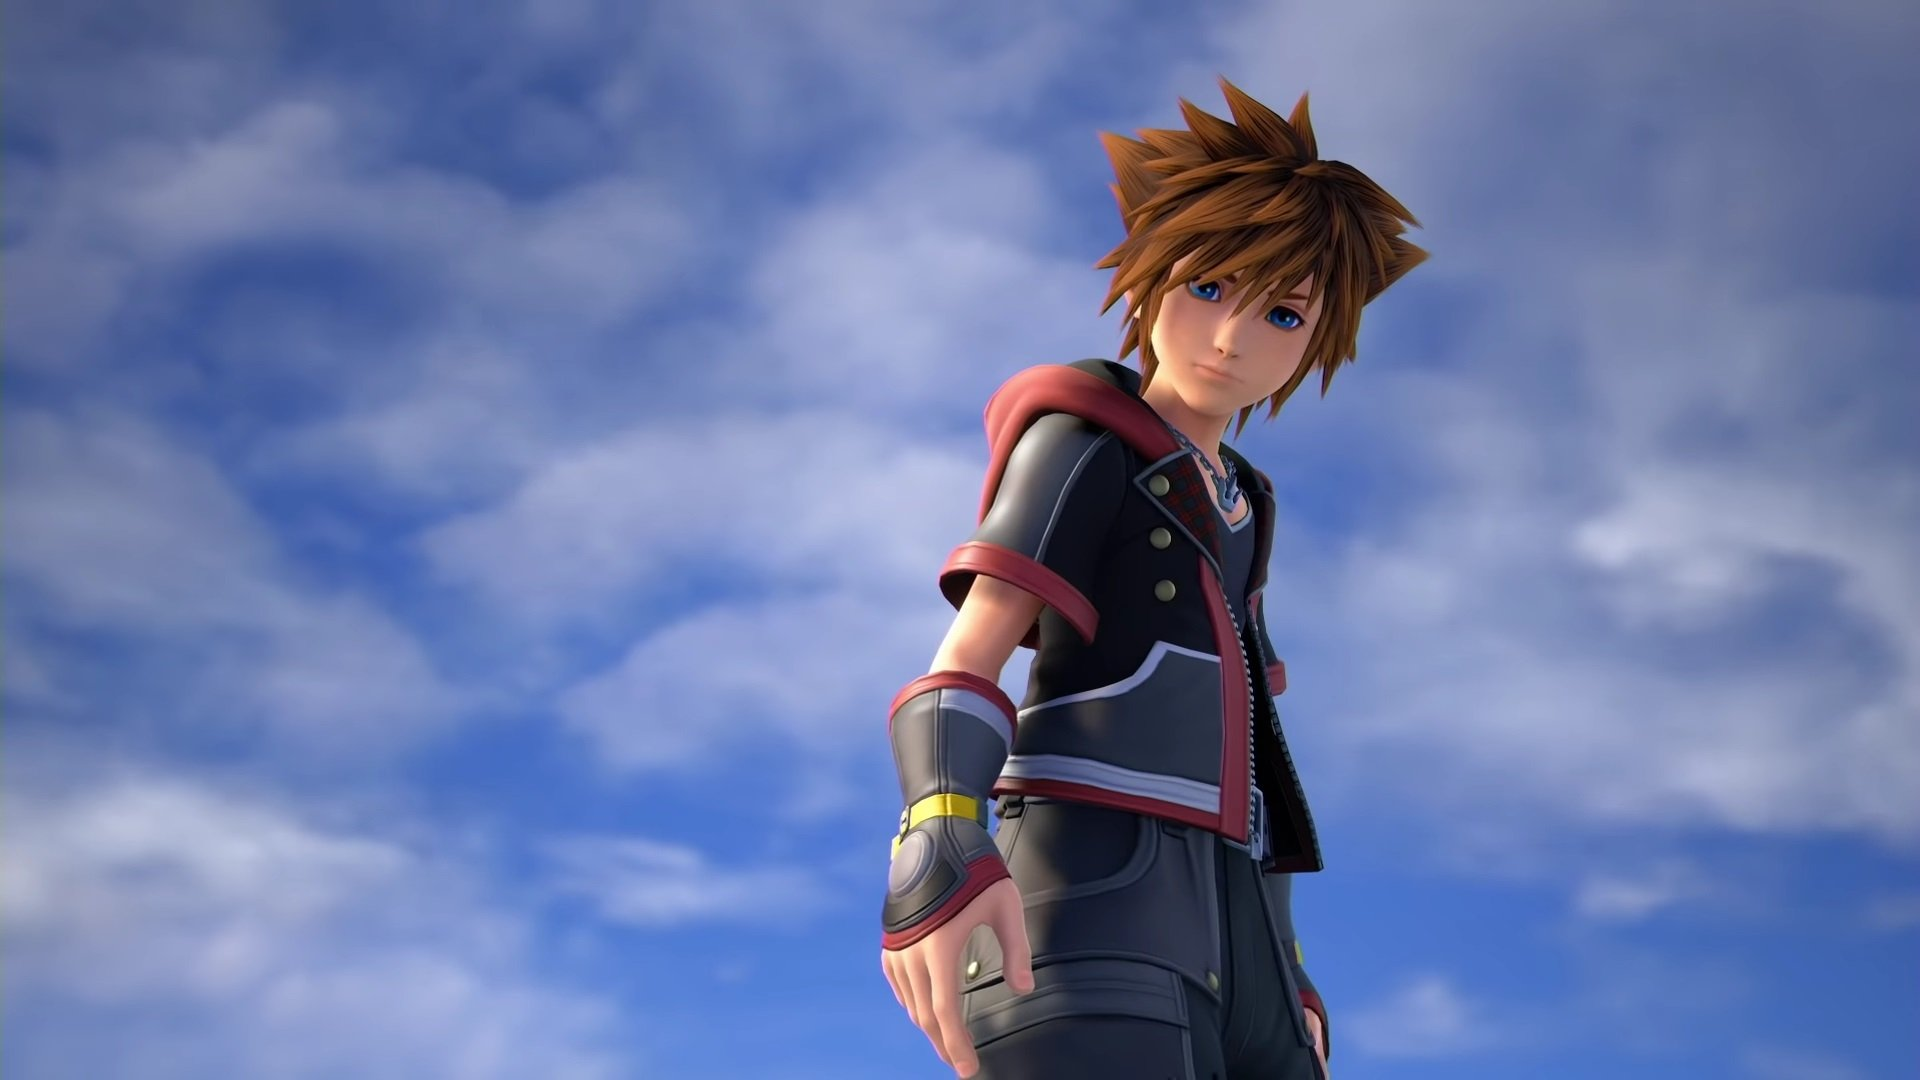 Sora Kingdom Hearts 3 Final Battle Trailer Hd Wallpaper